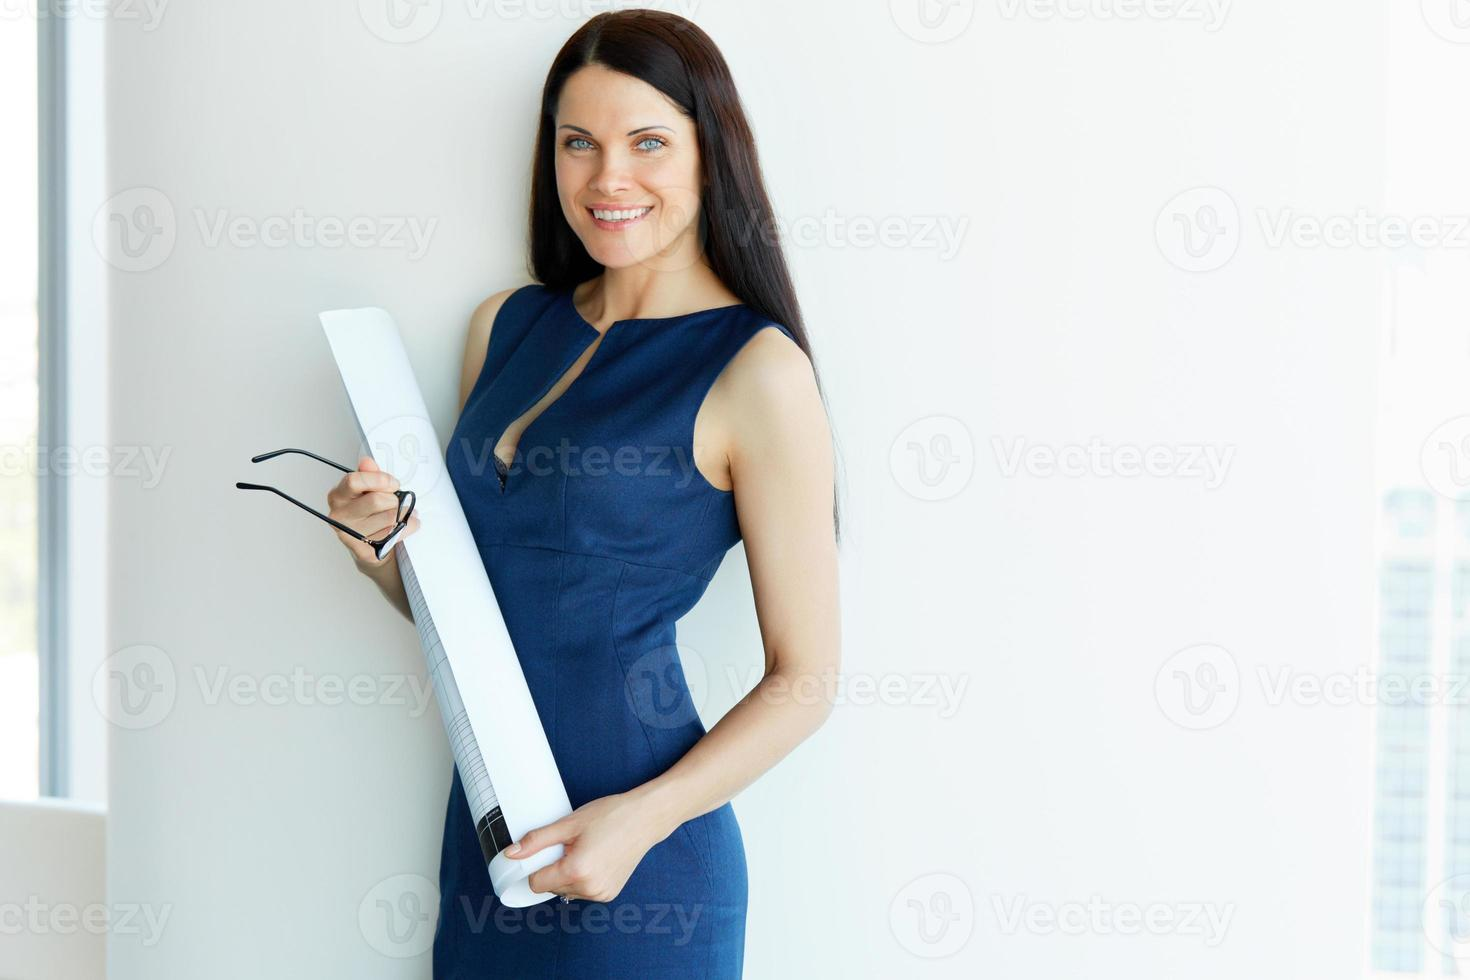 Young Female Architect Standind in an Office. Business People photo